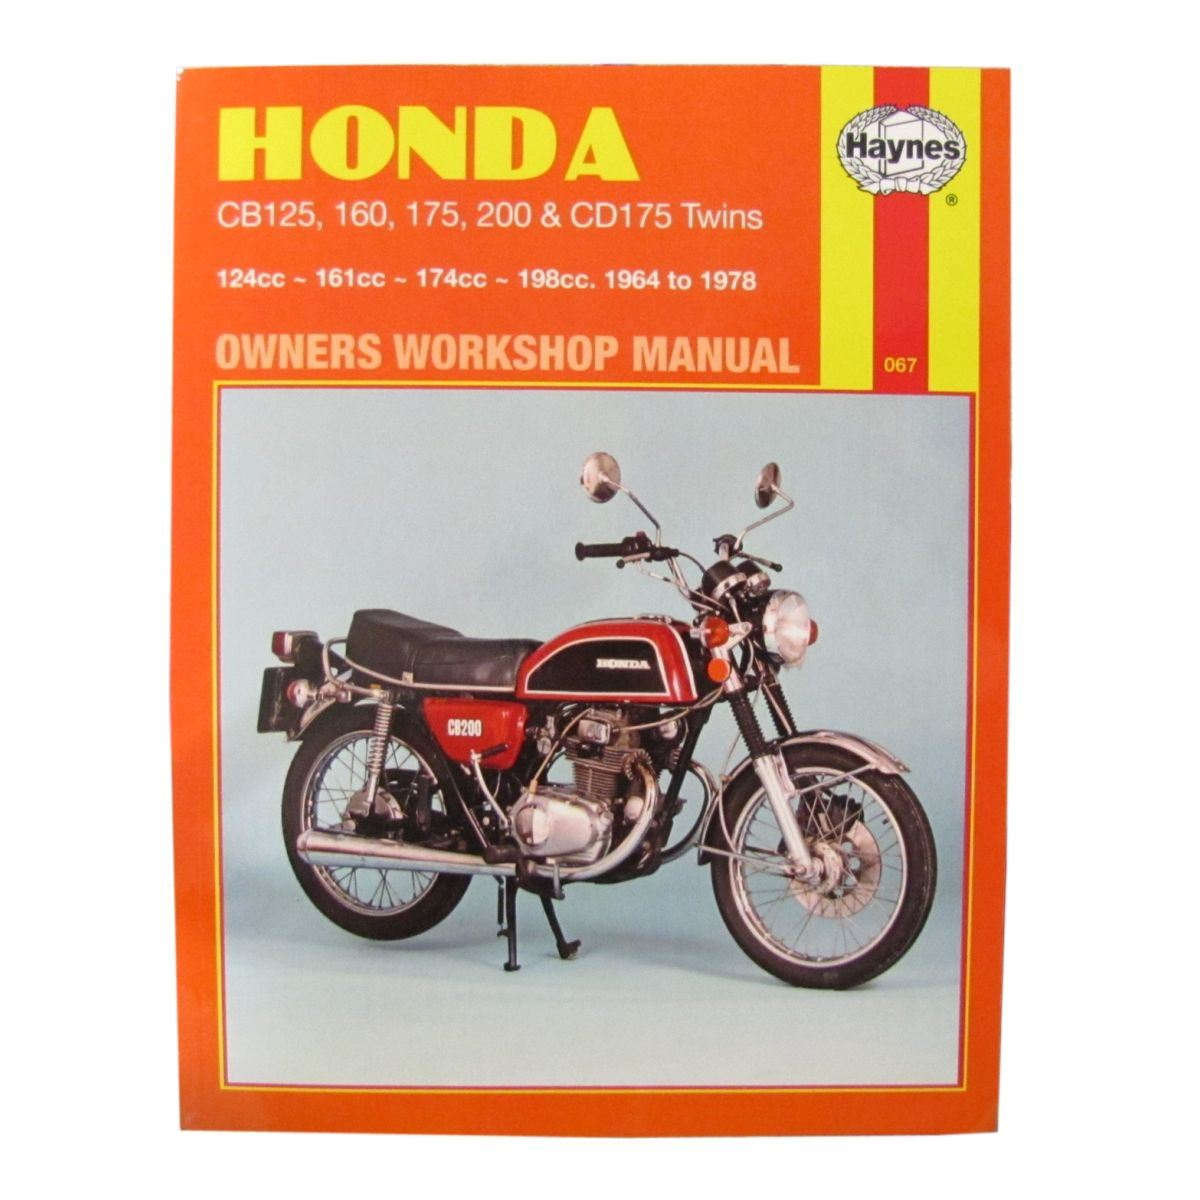 workshop manual honda cb125 70 71 cb200 74 78 cb175 70 75 cd175 rh ebay co uk 1985 Honda ATC 250R honda cd 70 shop manual